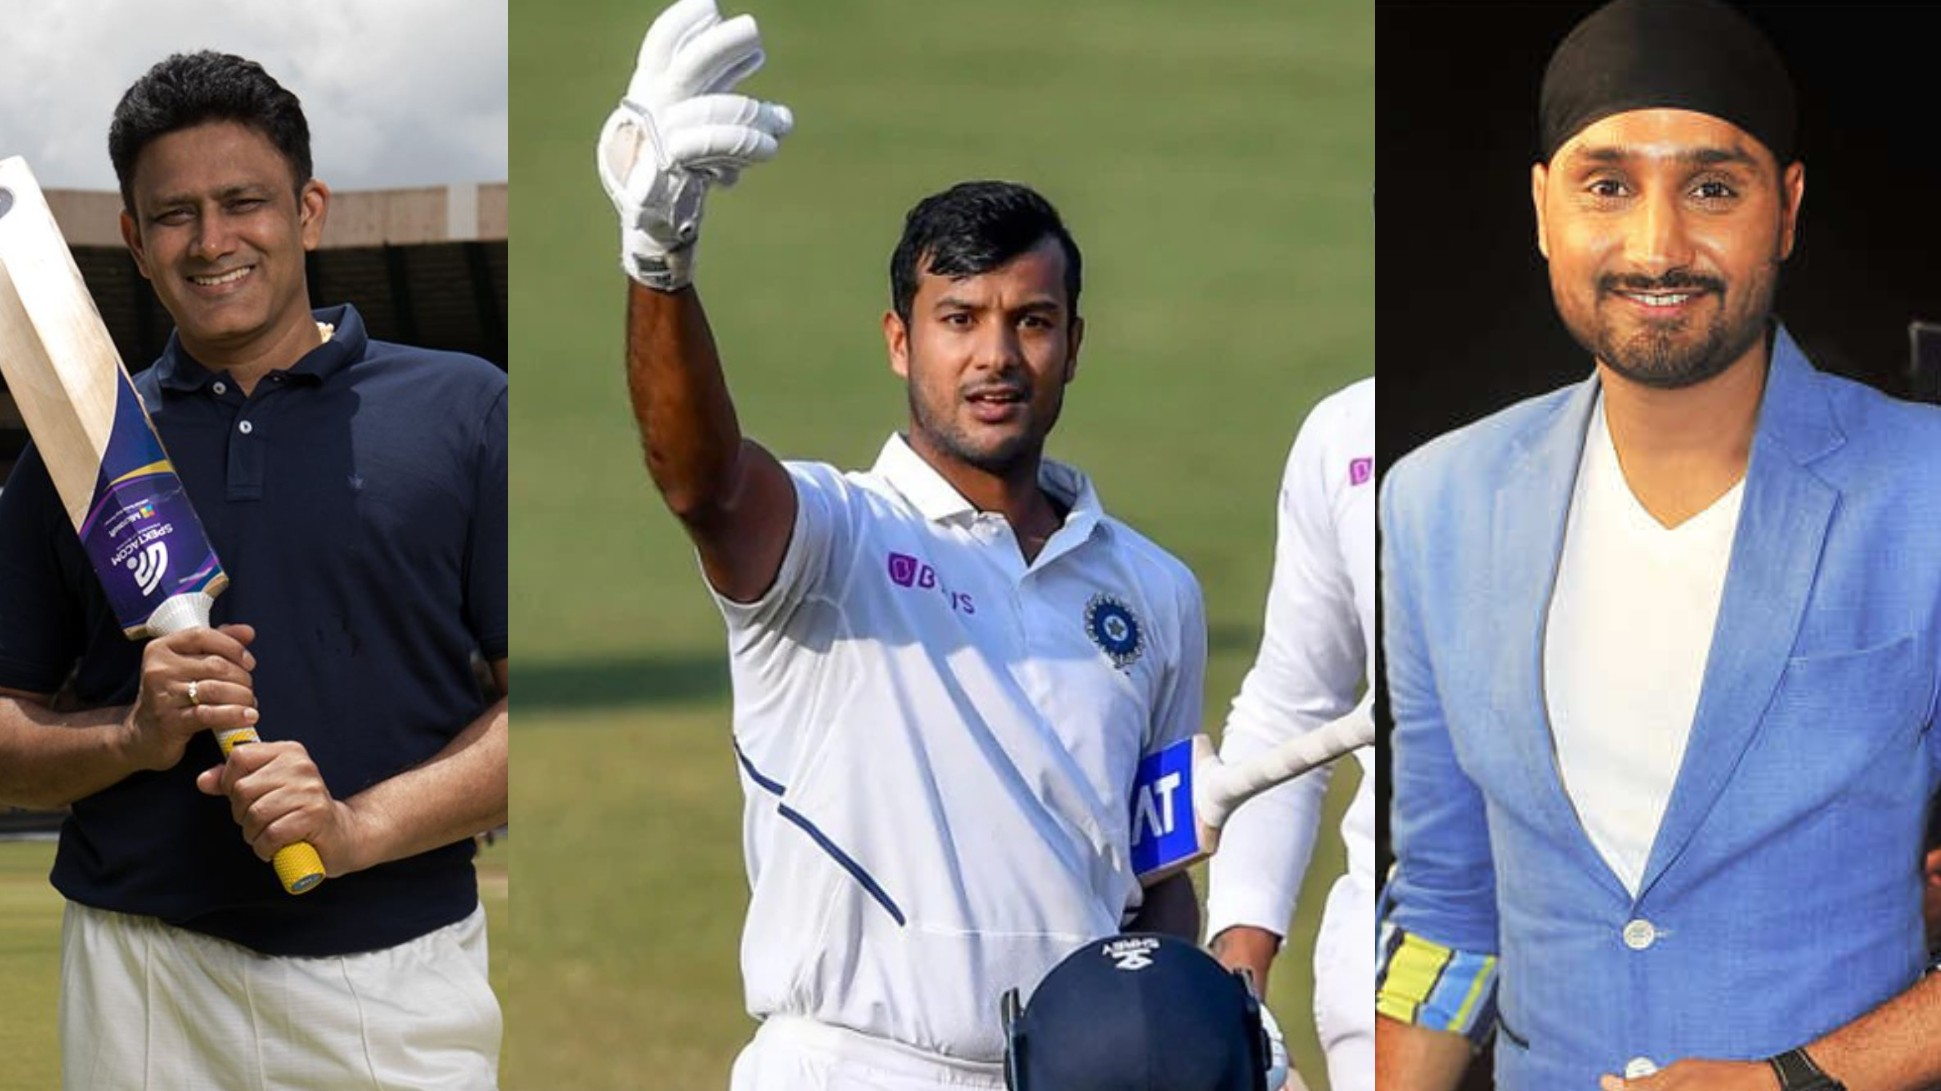 IND v BAN 2019: Cricket fraternity lauds Mayank Agarwal's 243 as India ends day two on 493/6